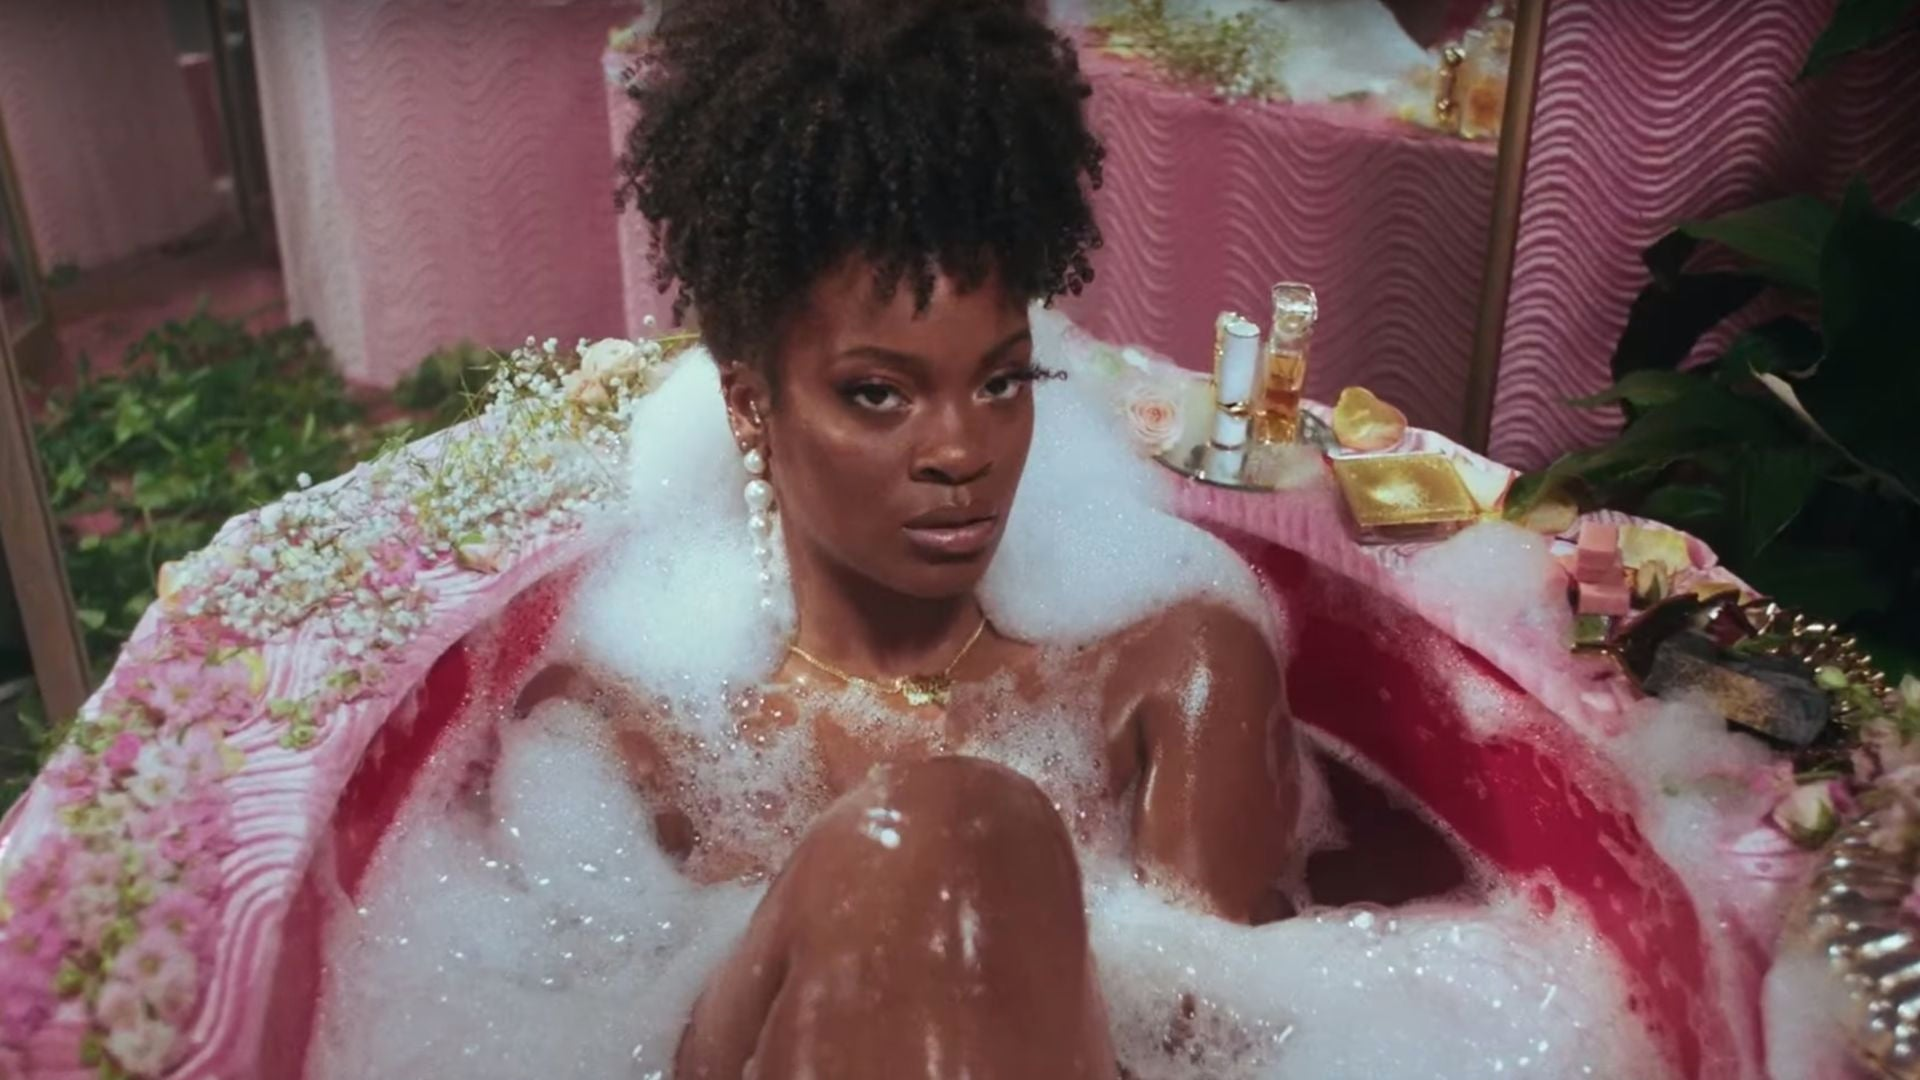 Ari Lennox Pays Homage To Missy Elliott And Total In New Music  Video For 'BMO'